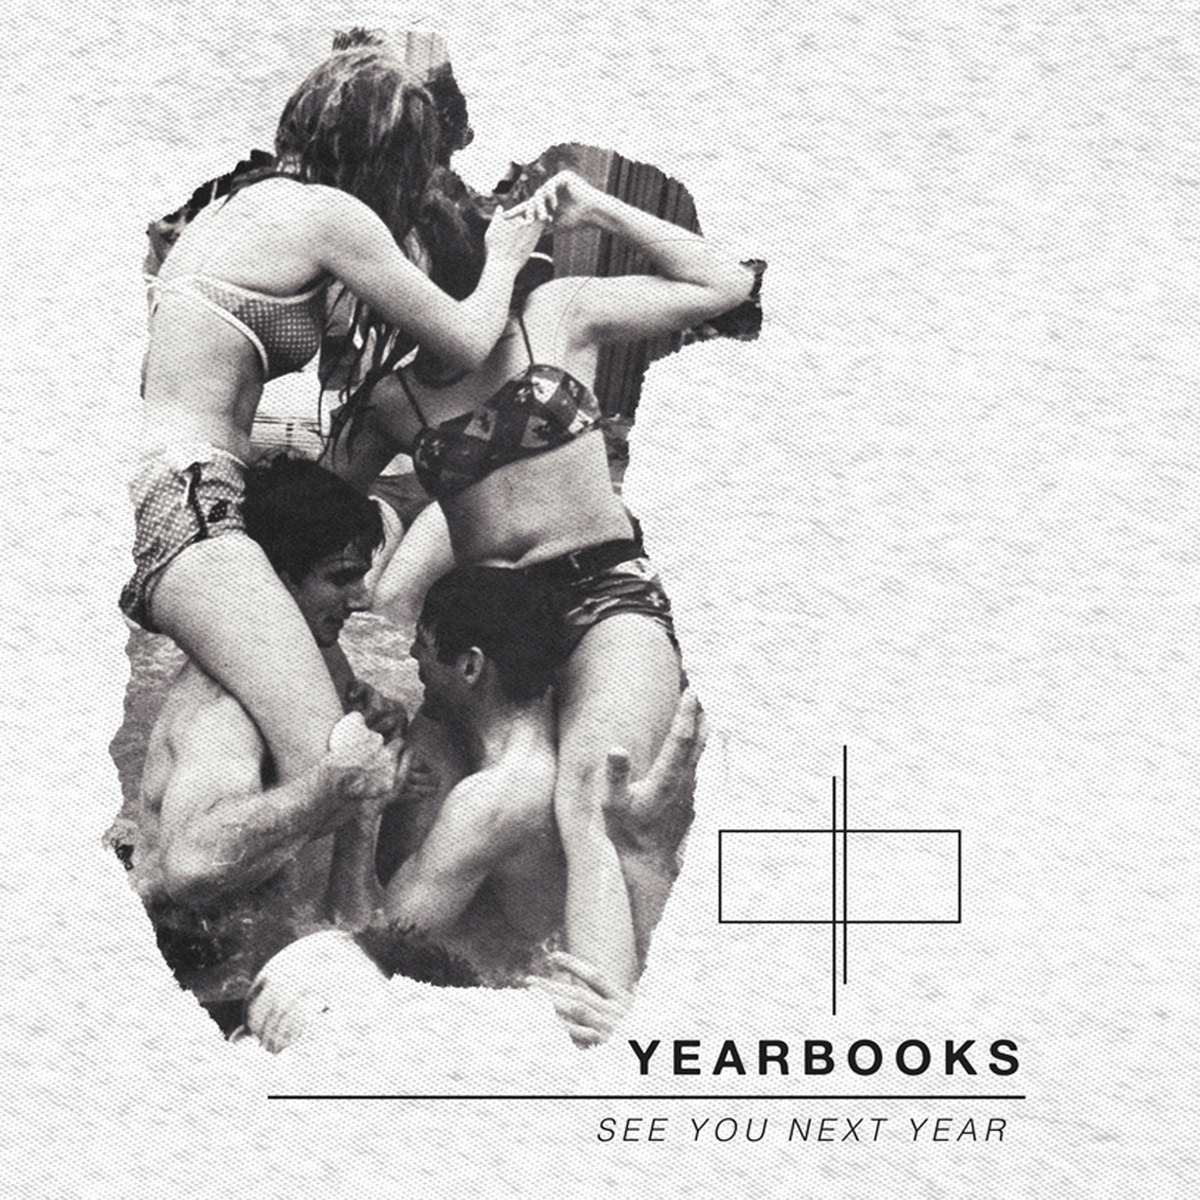 Yearbooks - See You Next Year CS